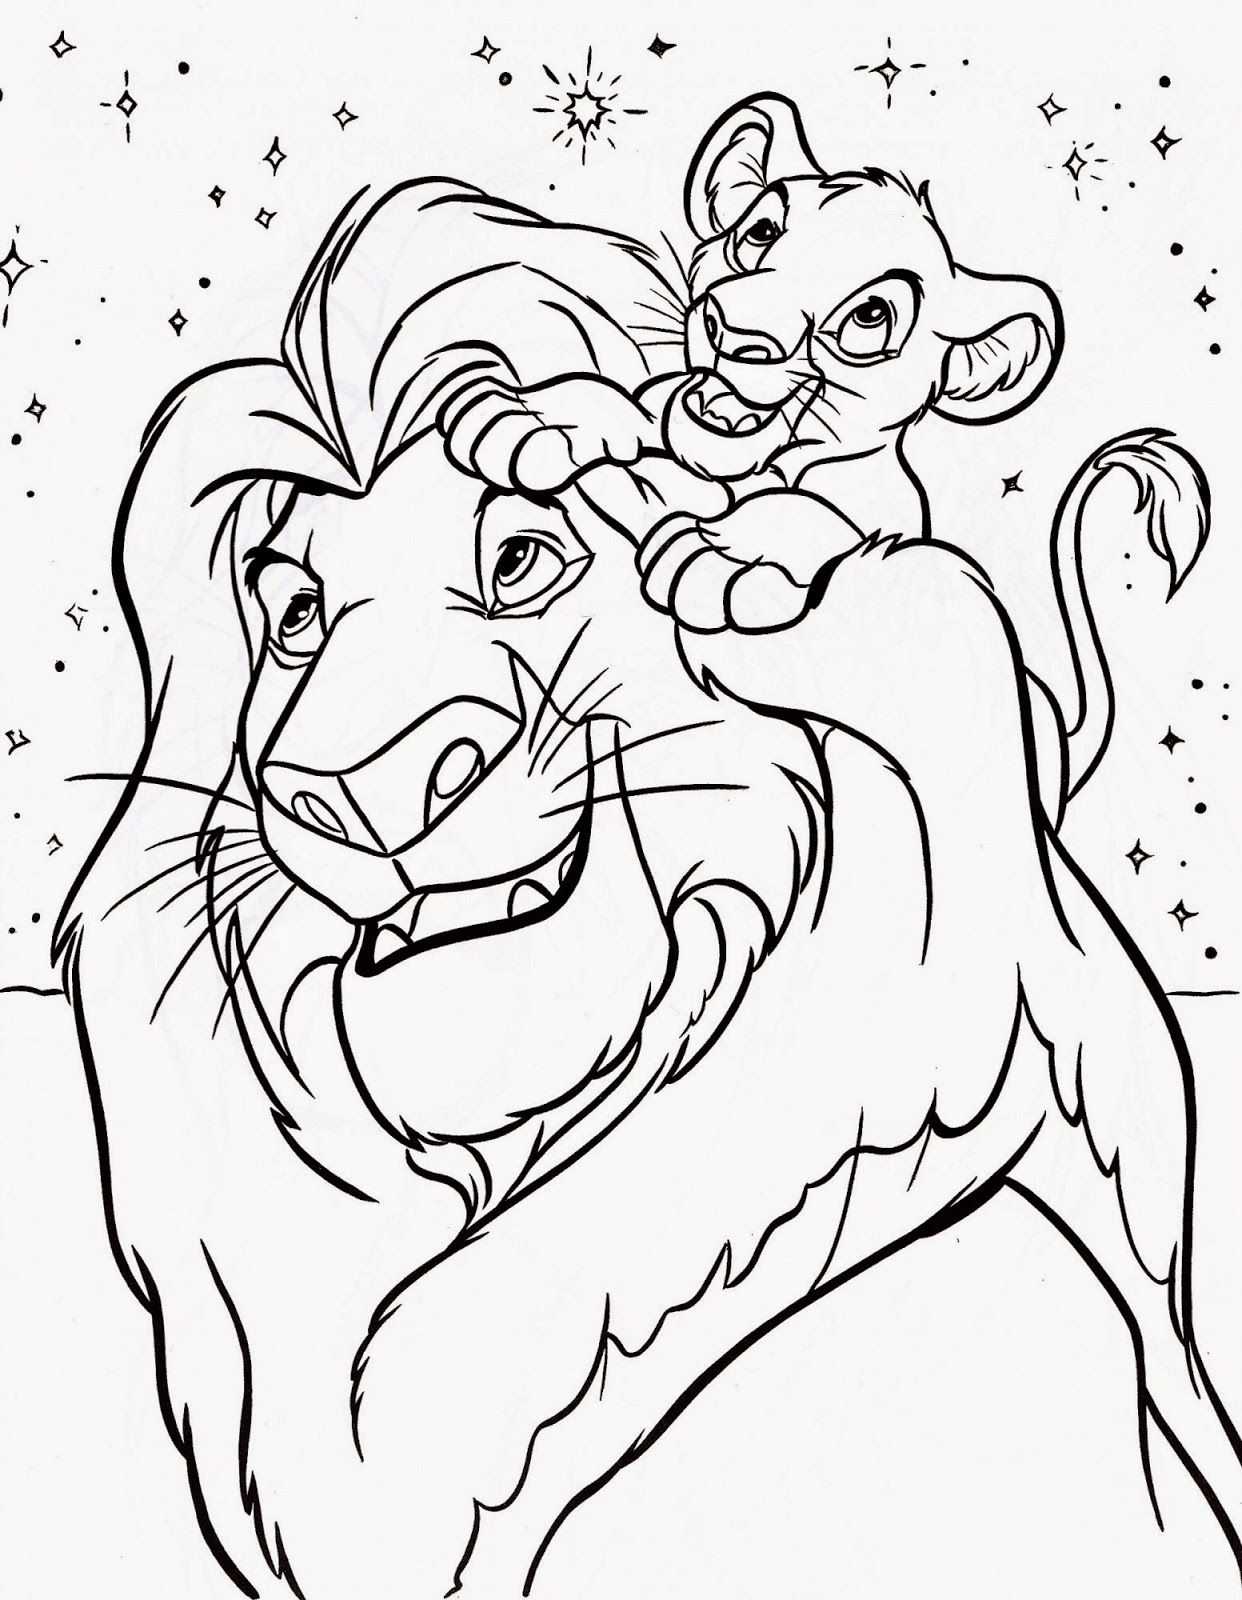 the-lion-king-coloring-page-0002-q1